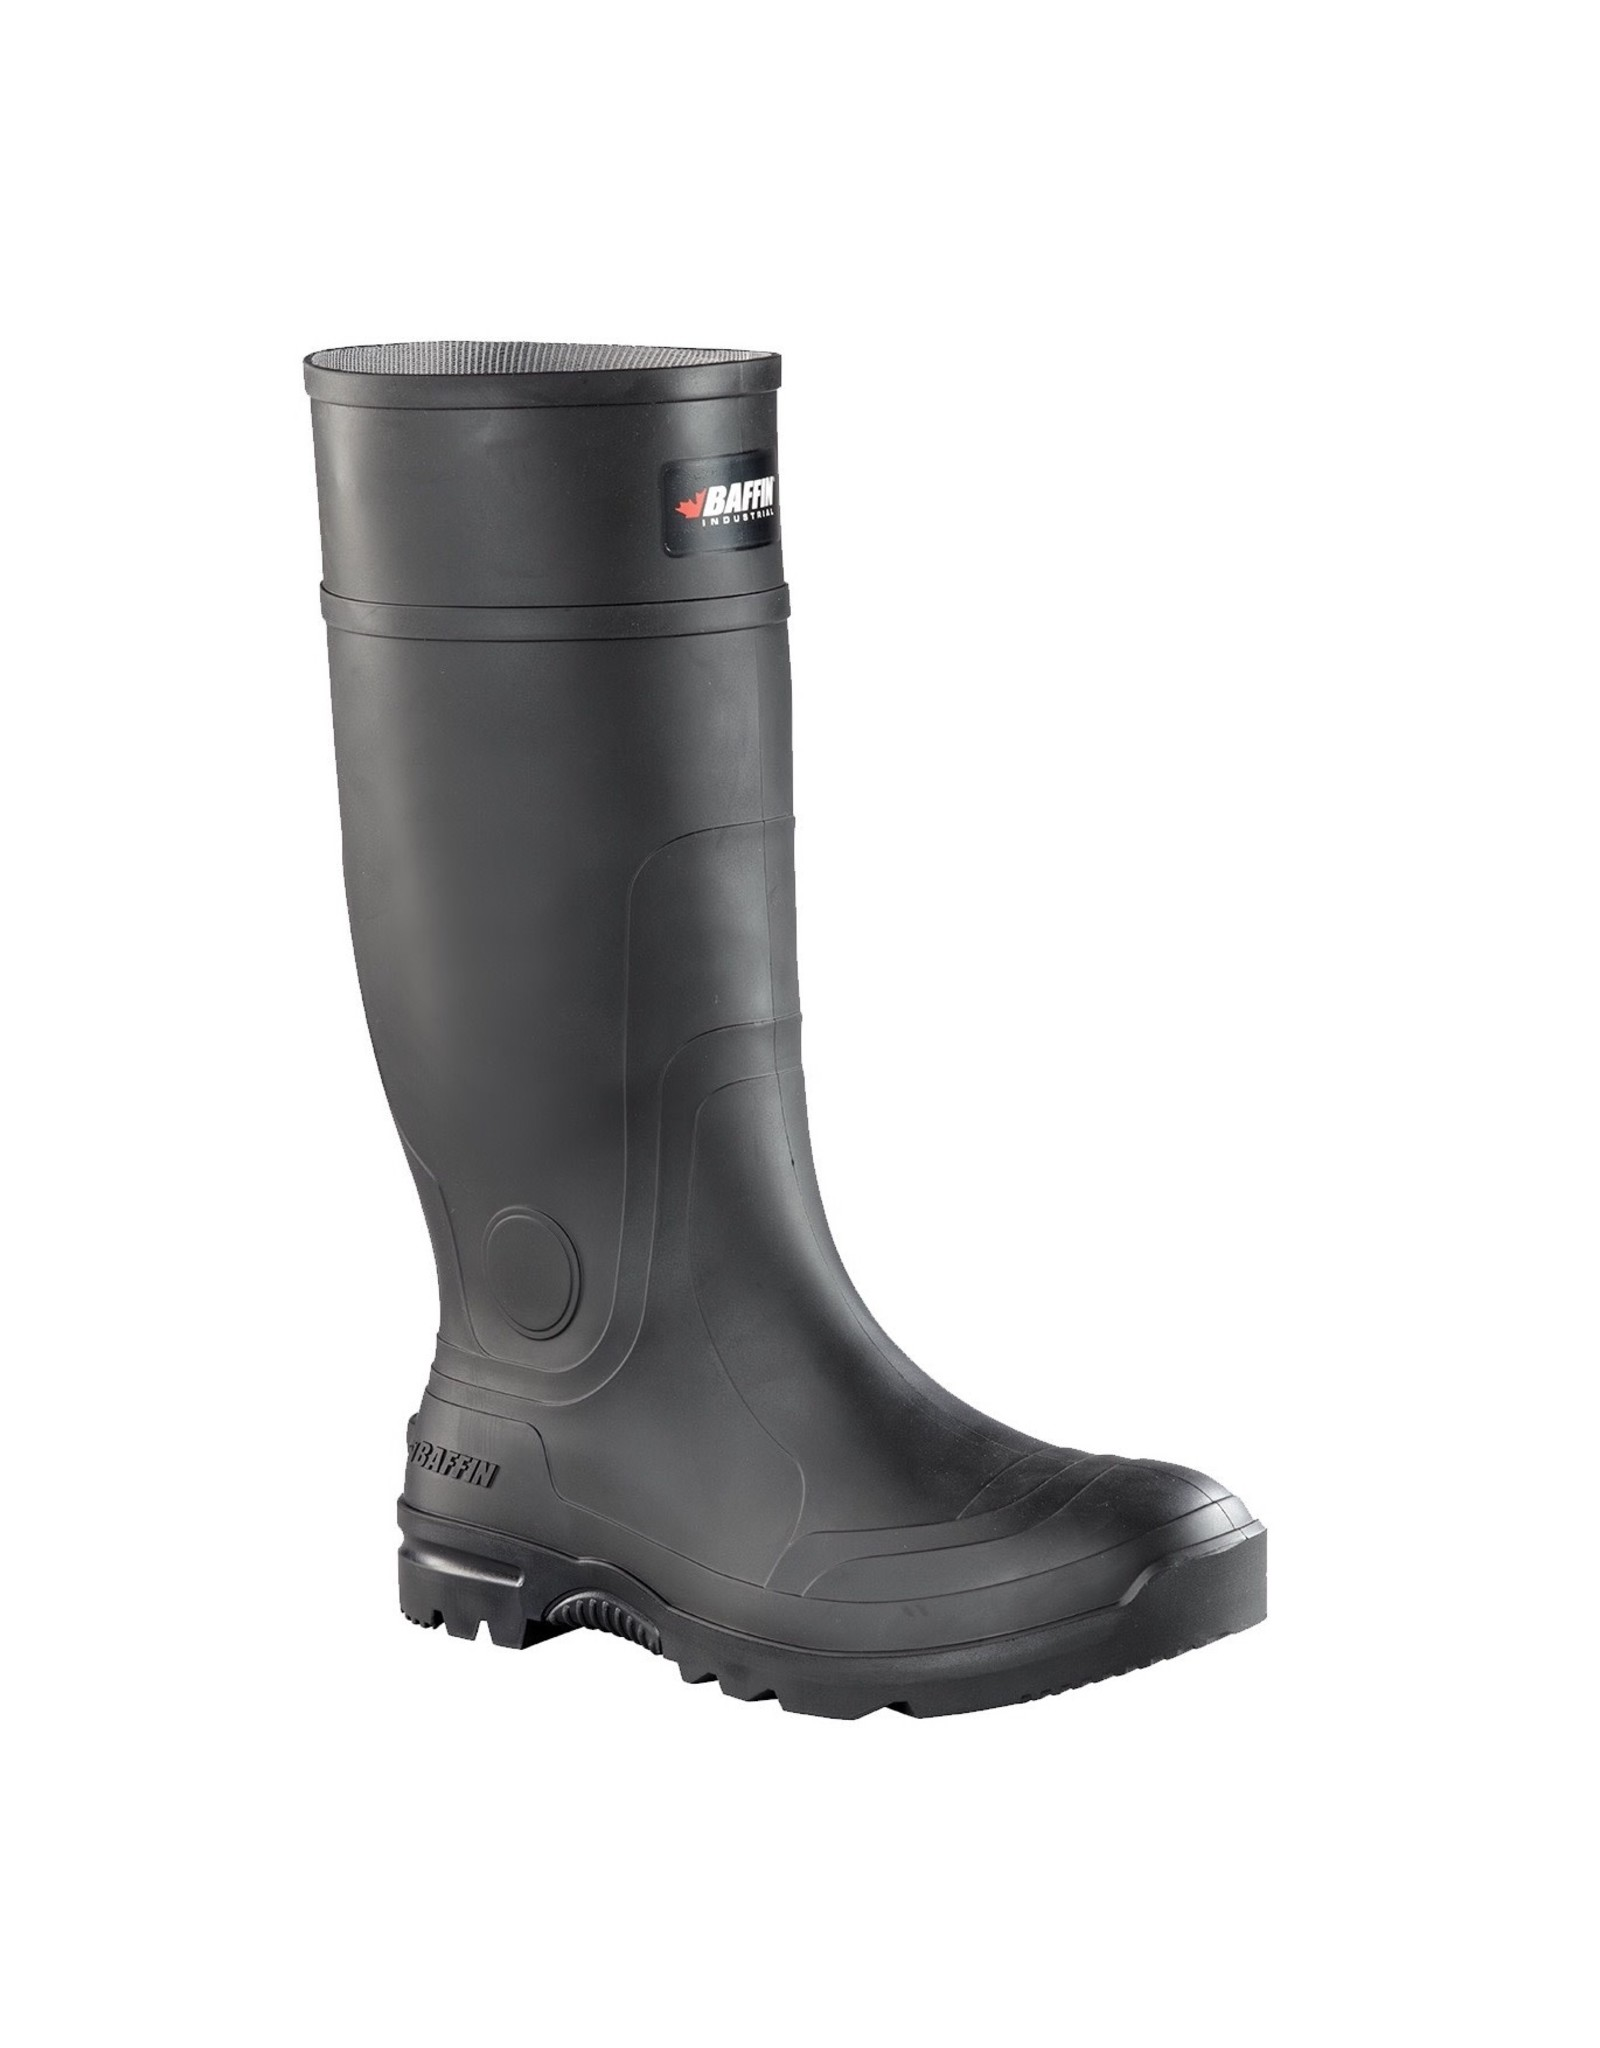 Baffin Baffin Blackhawk PLN Men's